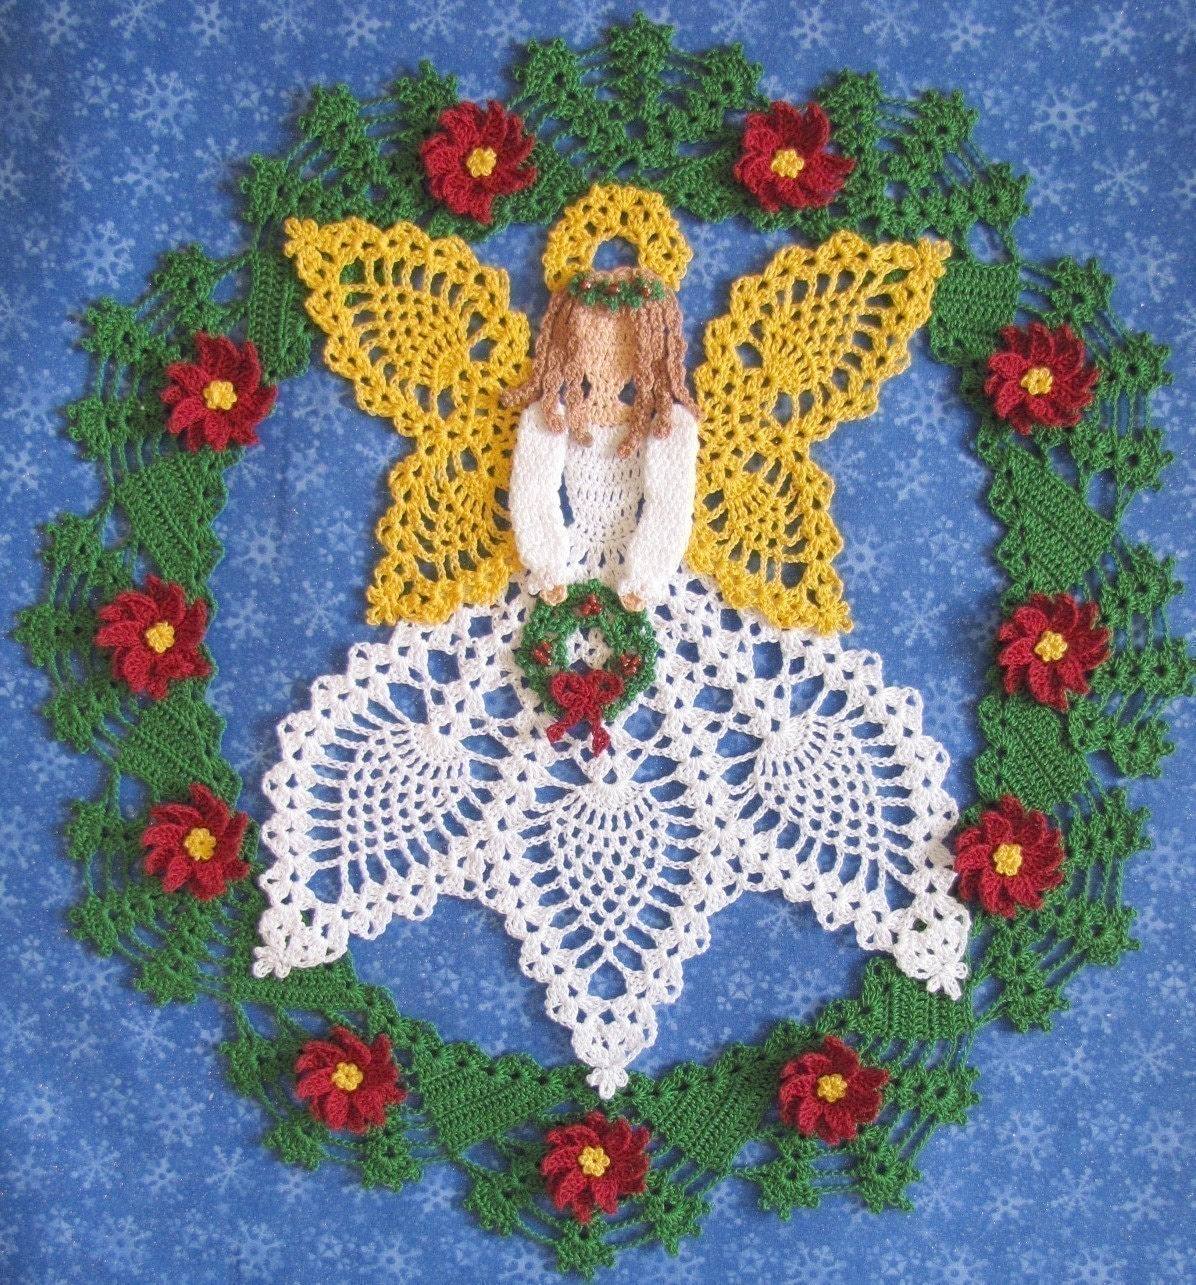 Pretty Crochet Doily – Christmas Crafts, Free Knitting Patterns